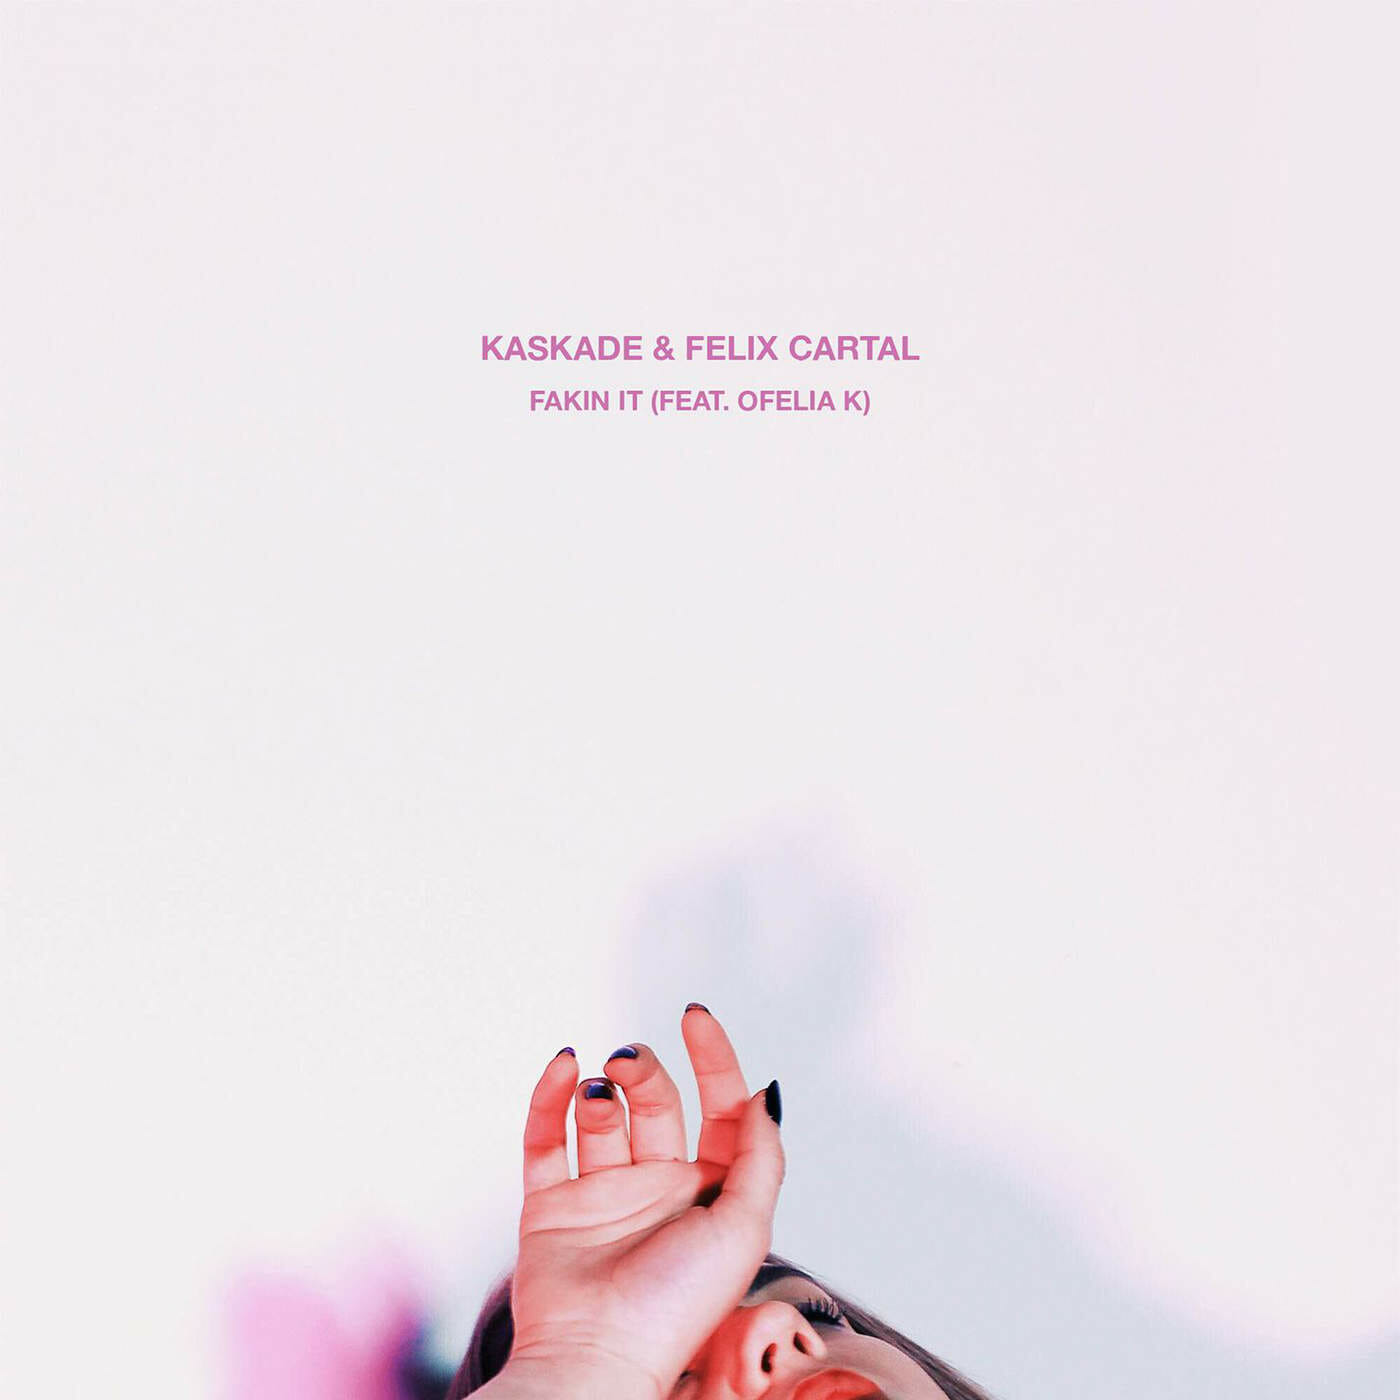 Kaskade & Felix Cartal – Fakin It feat. Ofelia K (Original Mix)Kaskade Feli Cartal Fakin It Feat. Ofelia K Single